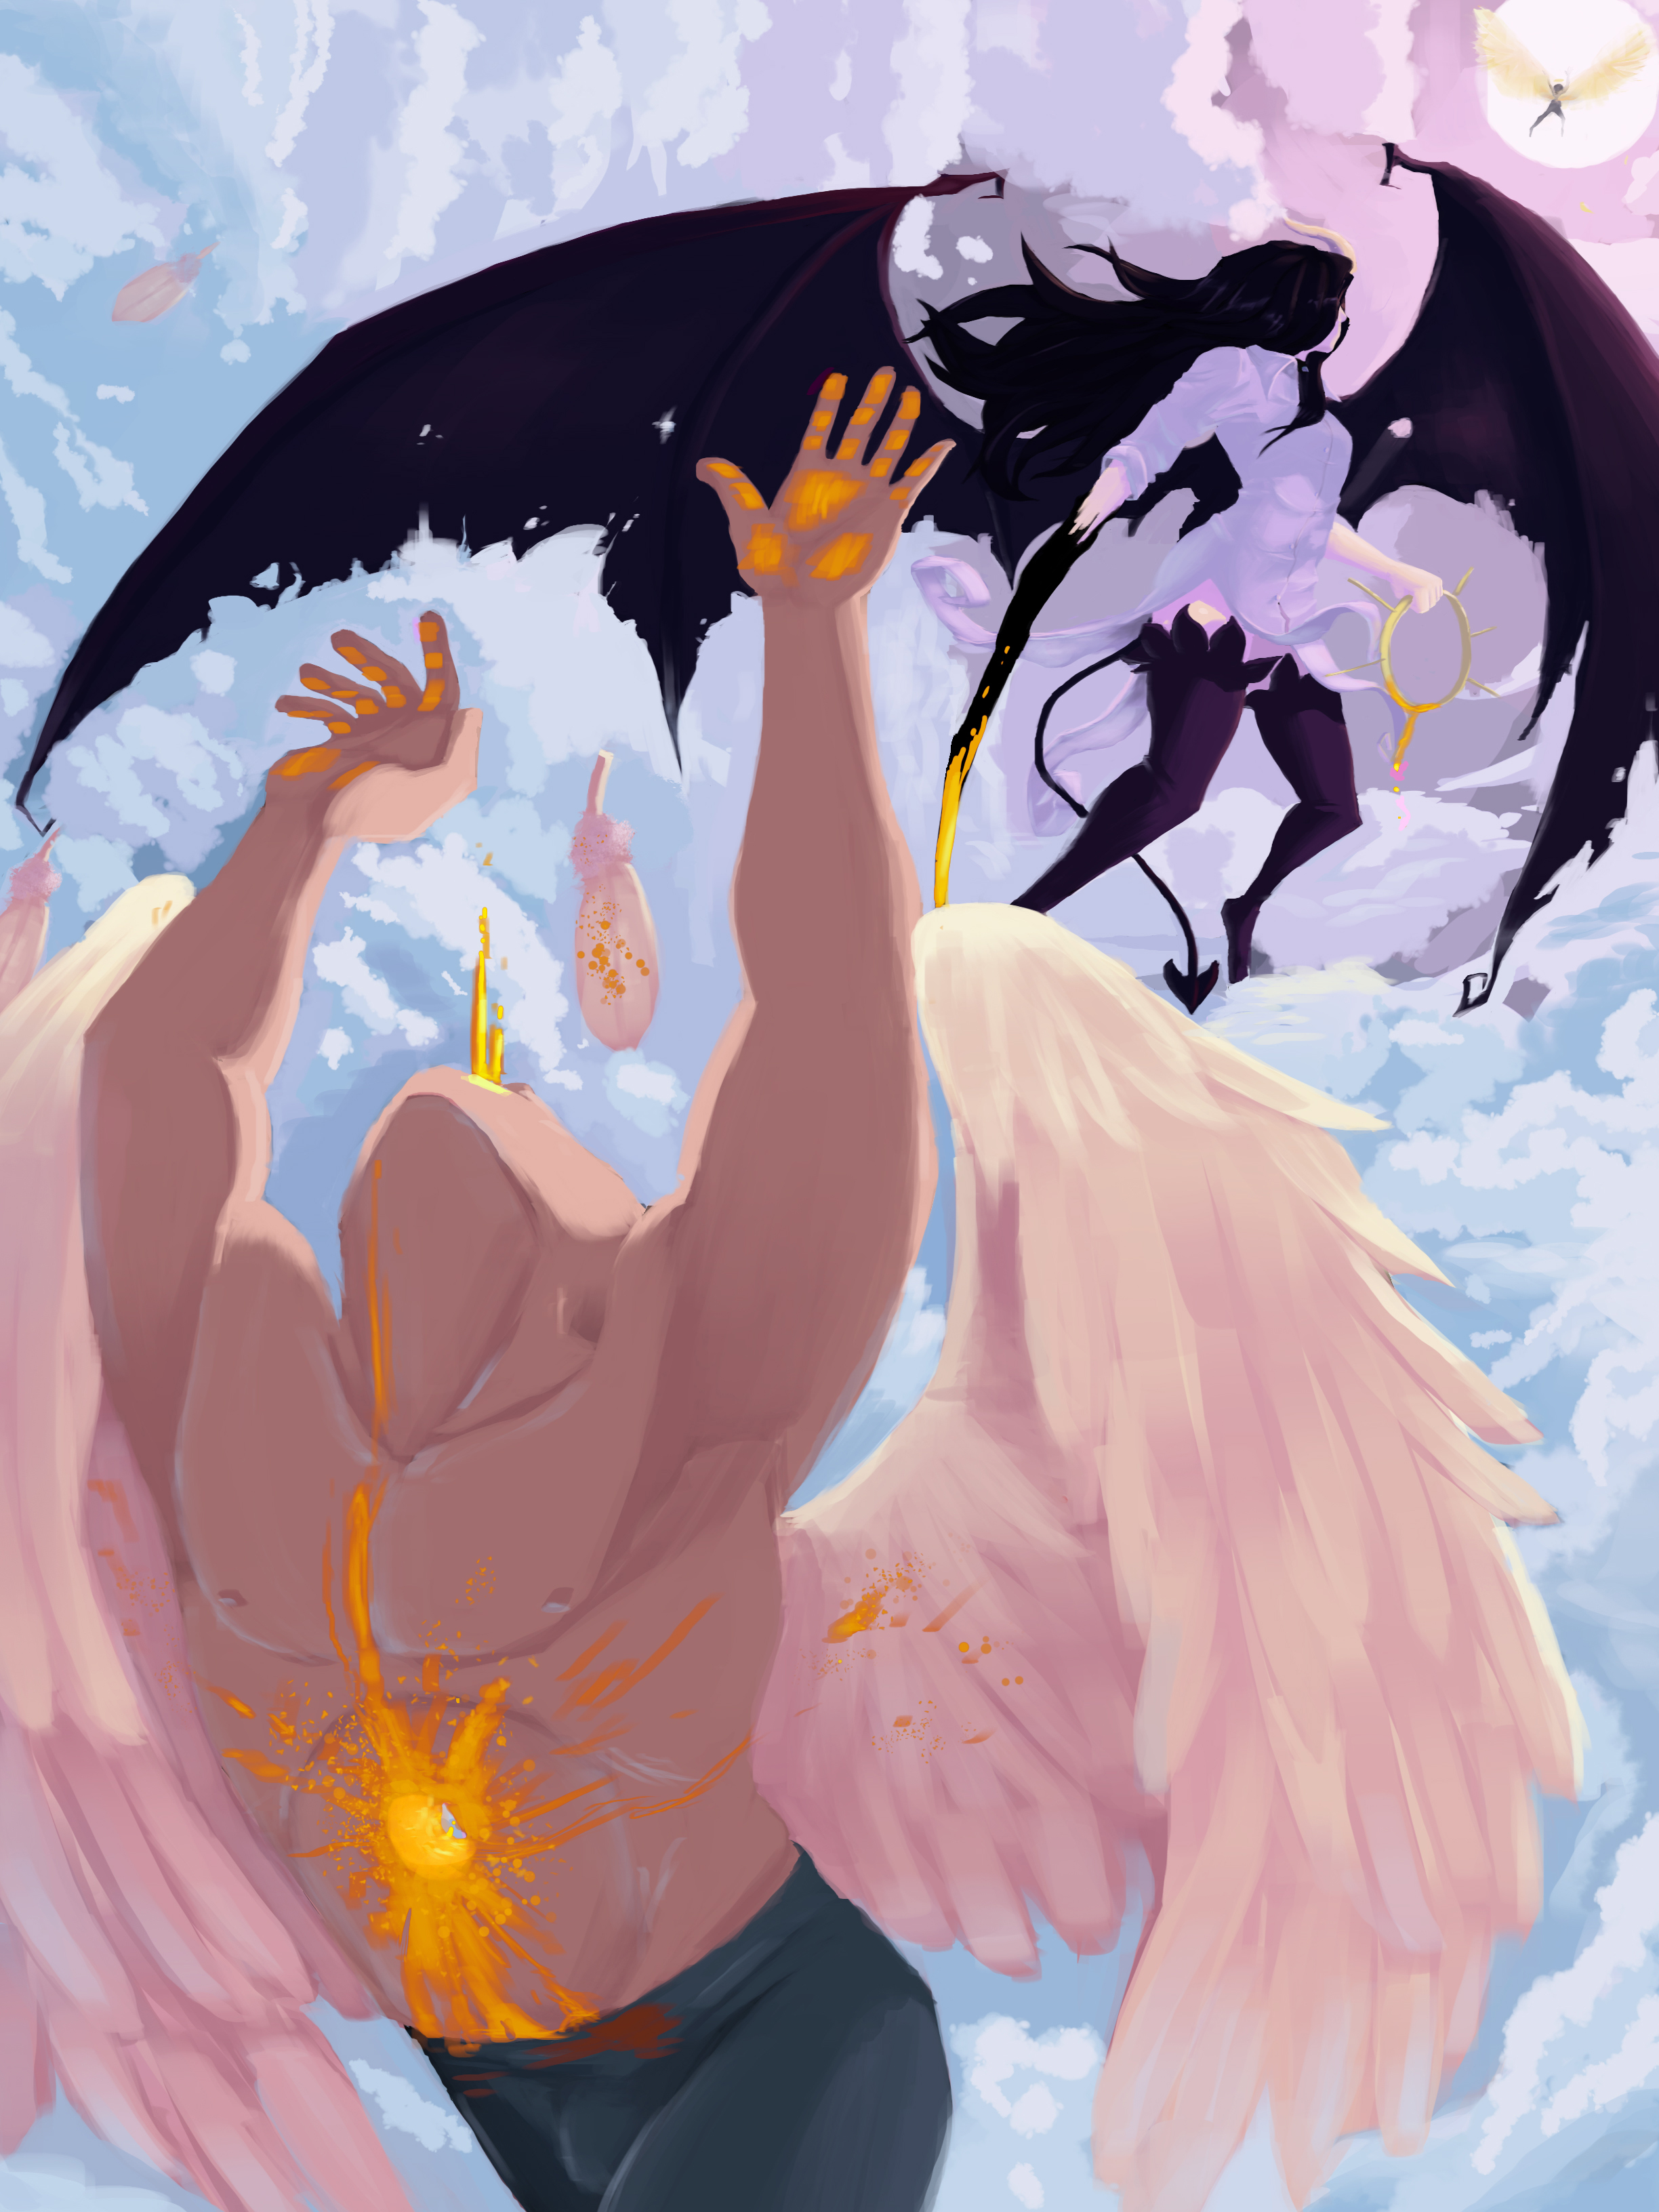 Death on Two Wings